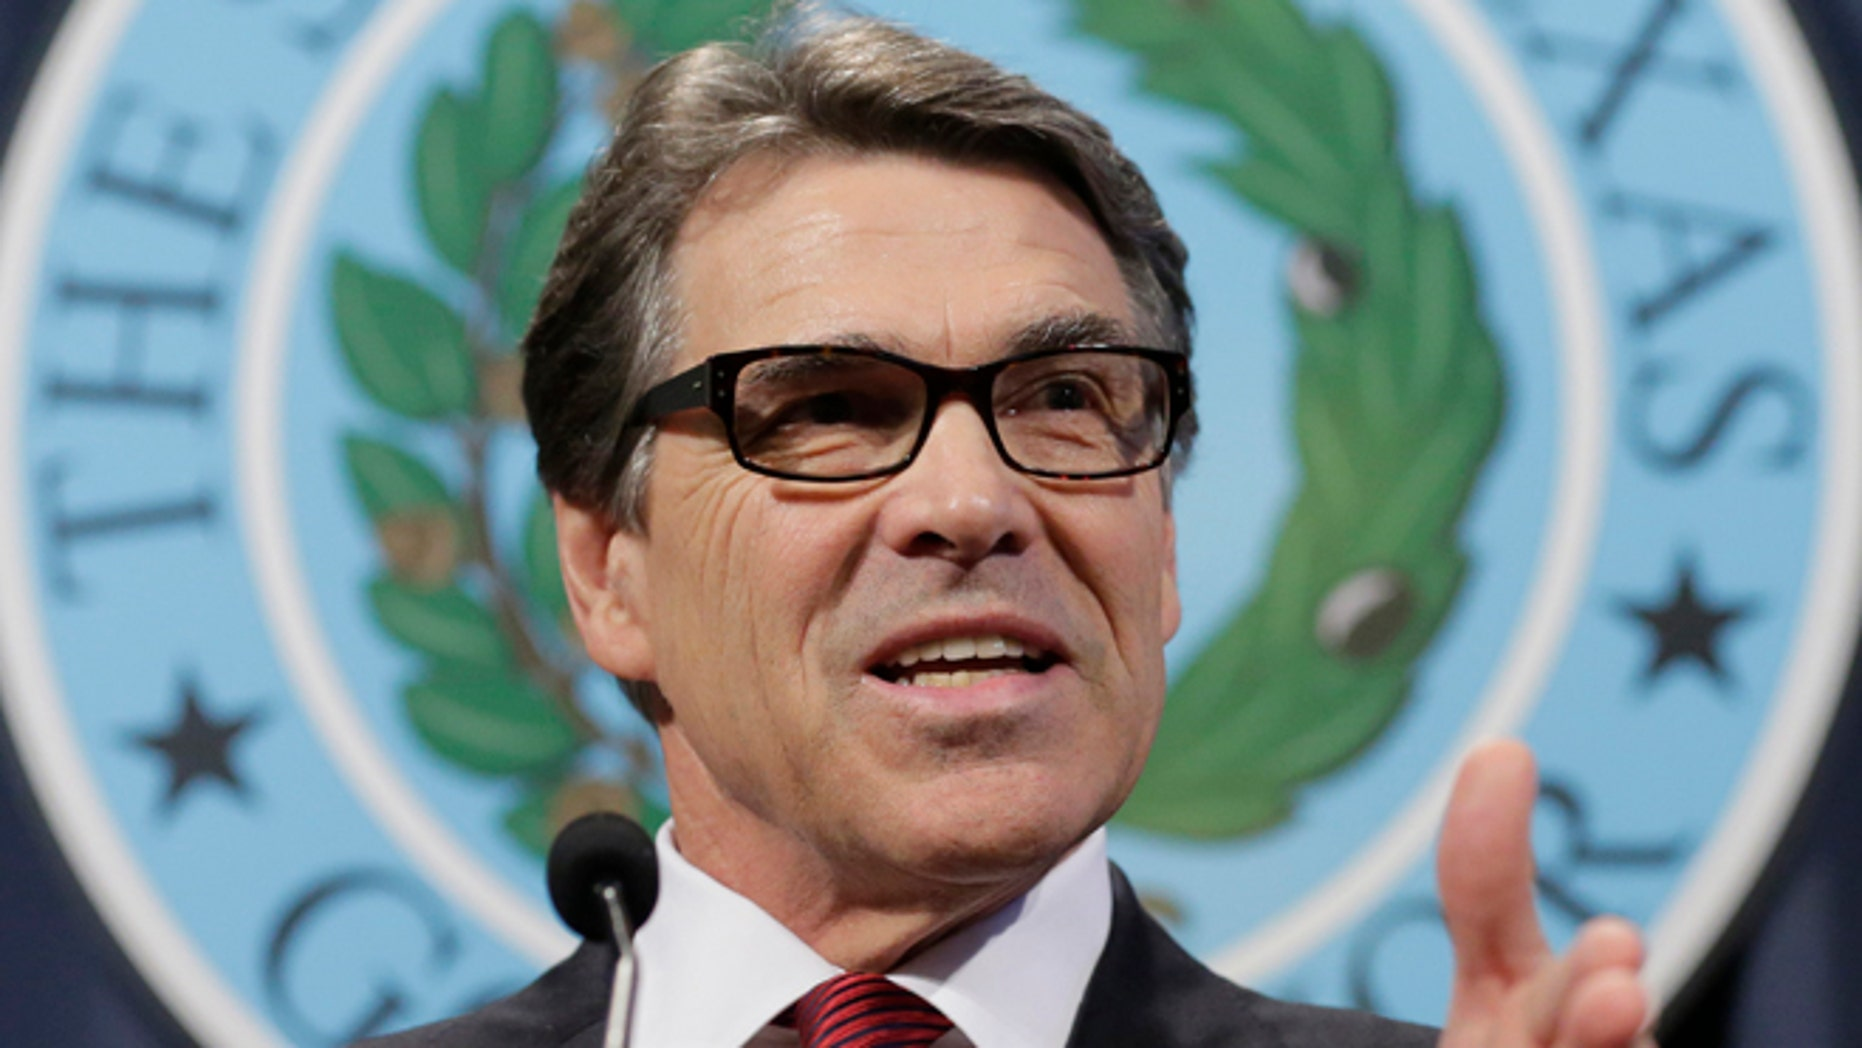 In this Friday, Oct. 17, 2014 photo, Texas Gov. Rick Perry answers questions during a news conference to discuss Texas Ebola prevention efforts in Austin, Texas.